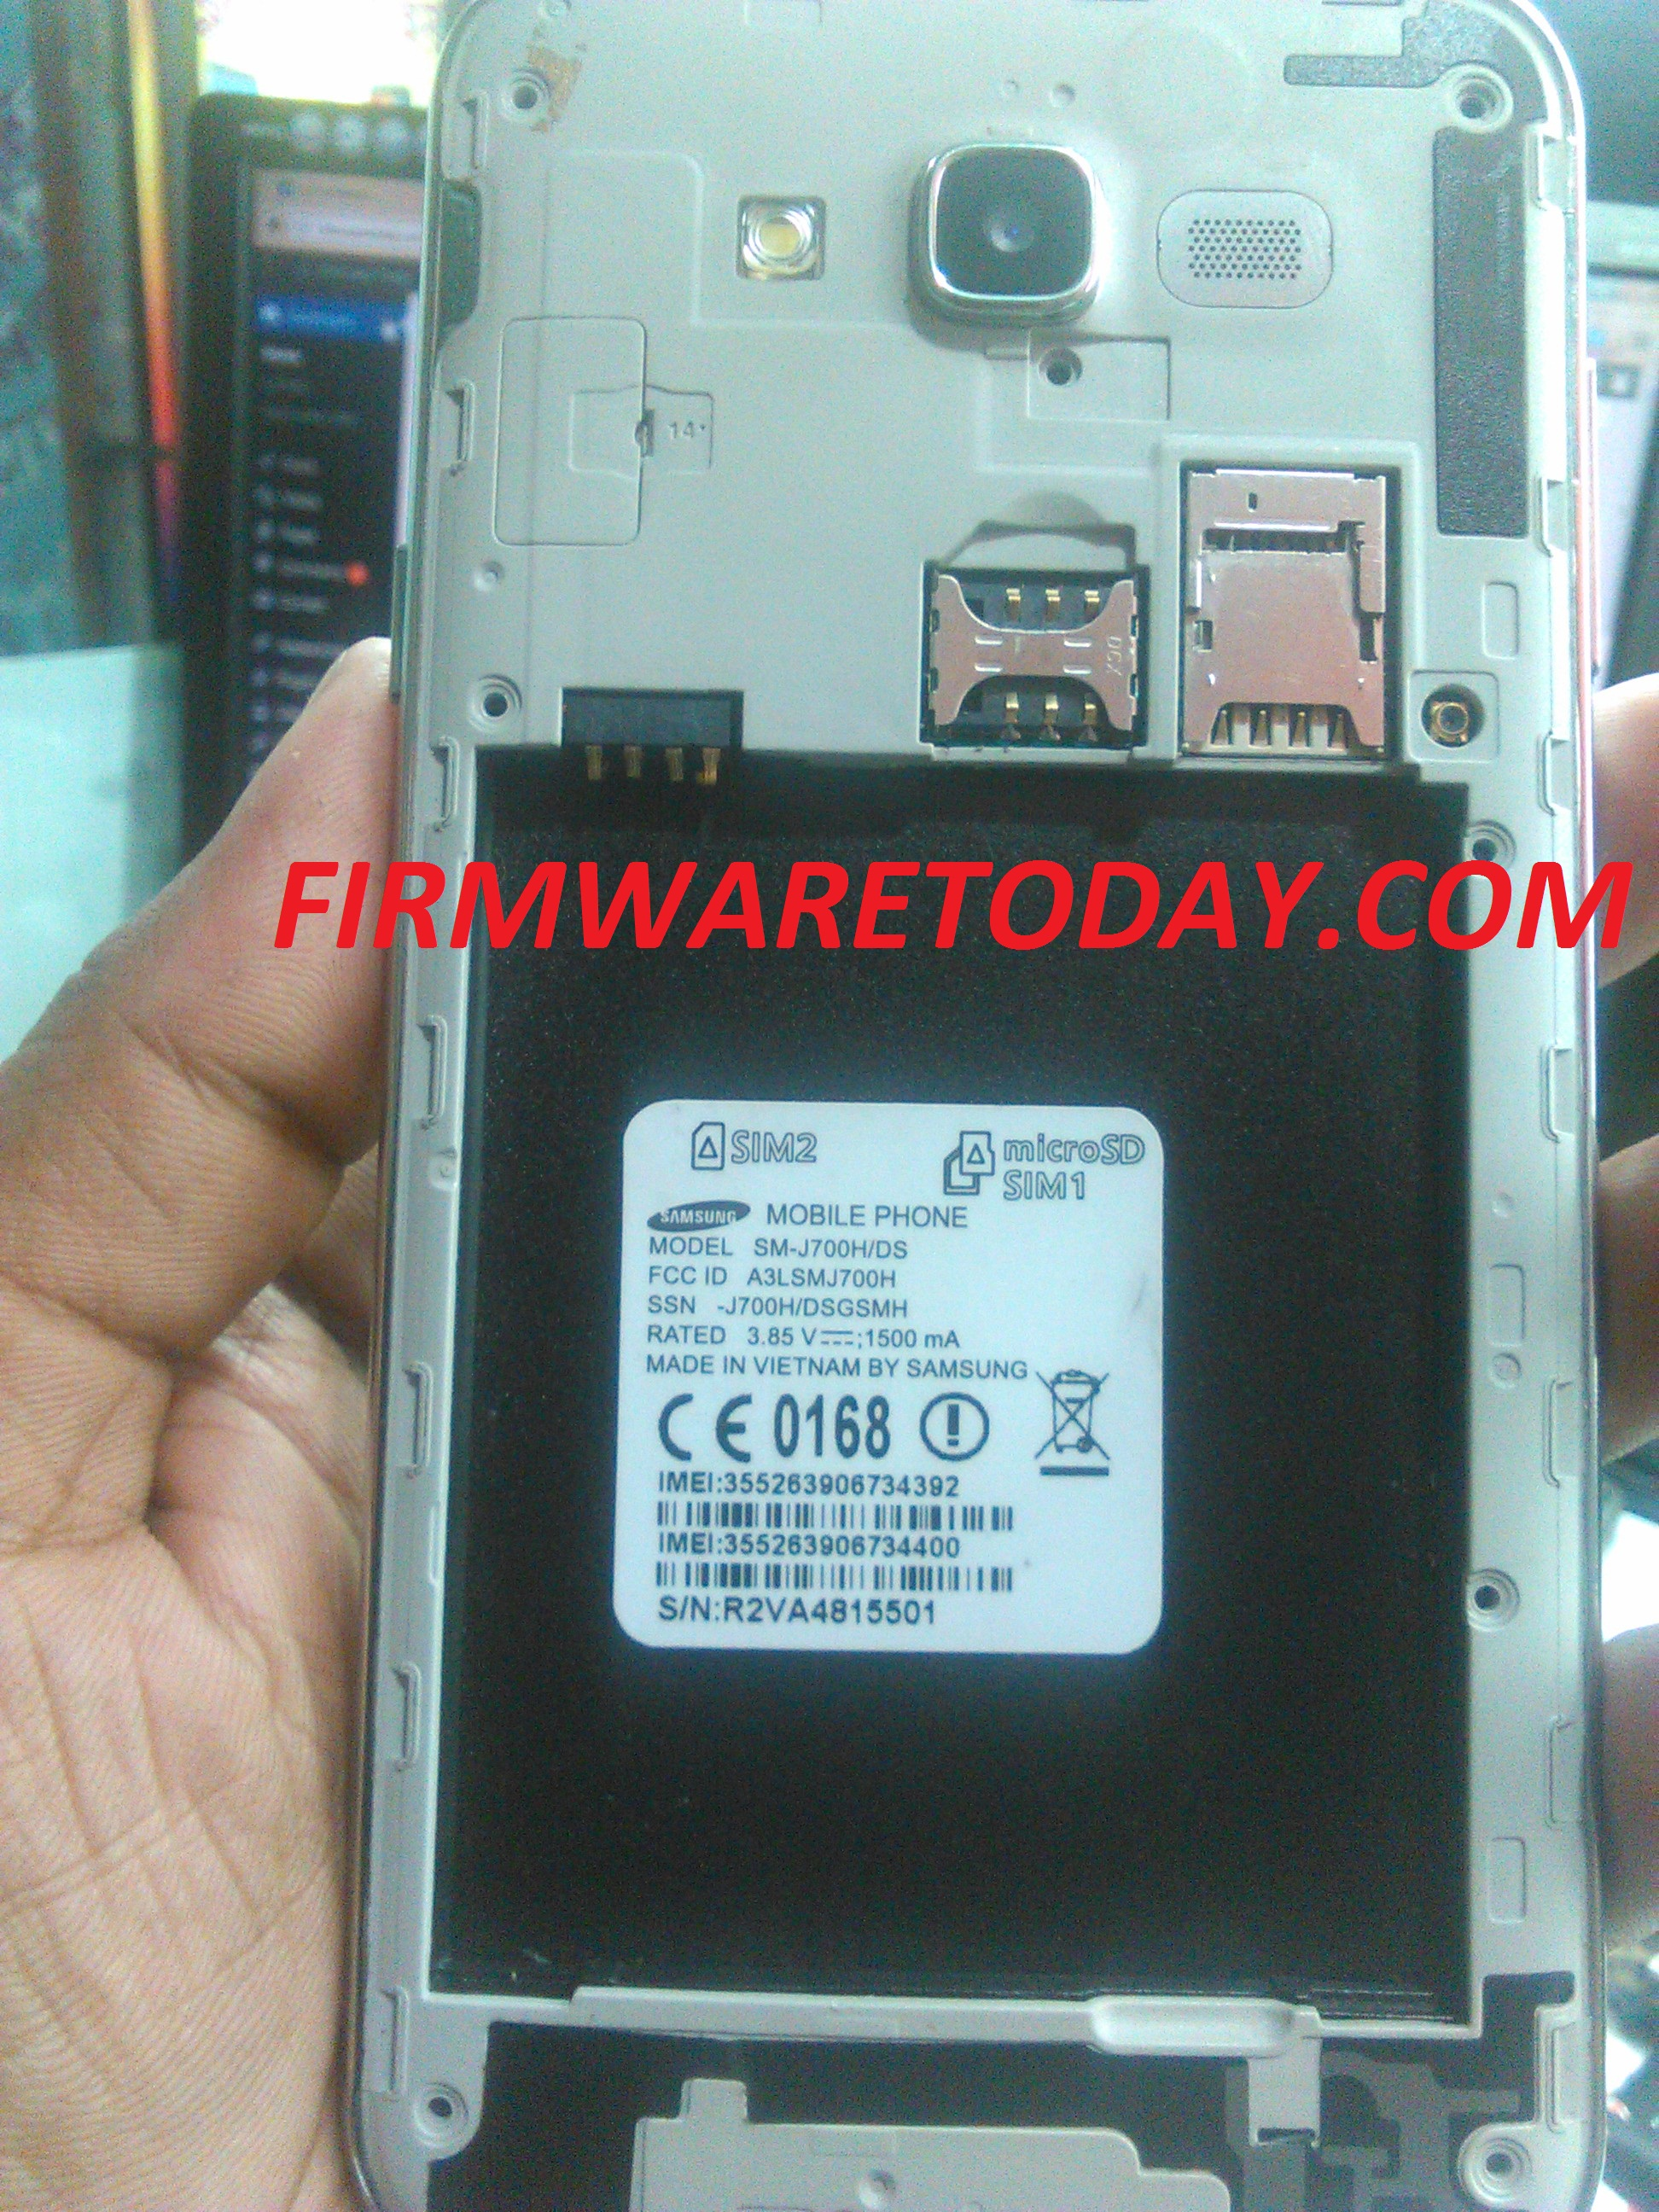 SAMSUNG GALAXY J7 SM-J700H-DS OFFICIAL FIRMWARE MT6589 OR MT6583 (3rd version) 2000% tested by firmwaretoday.com